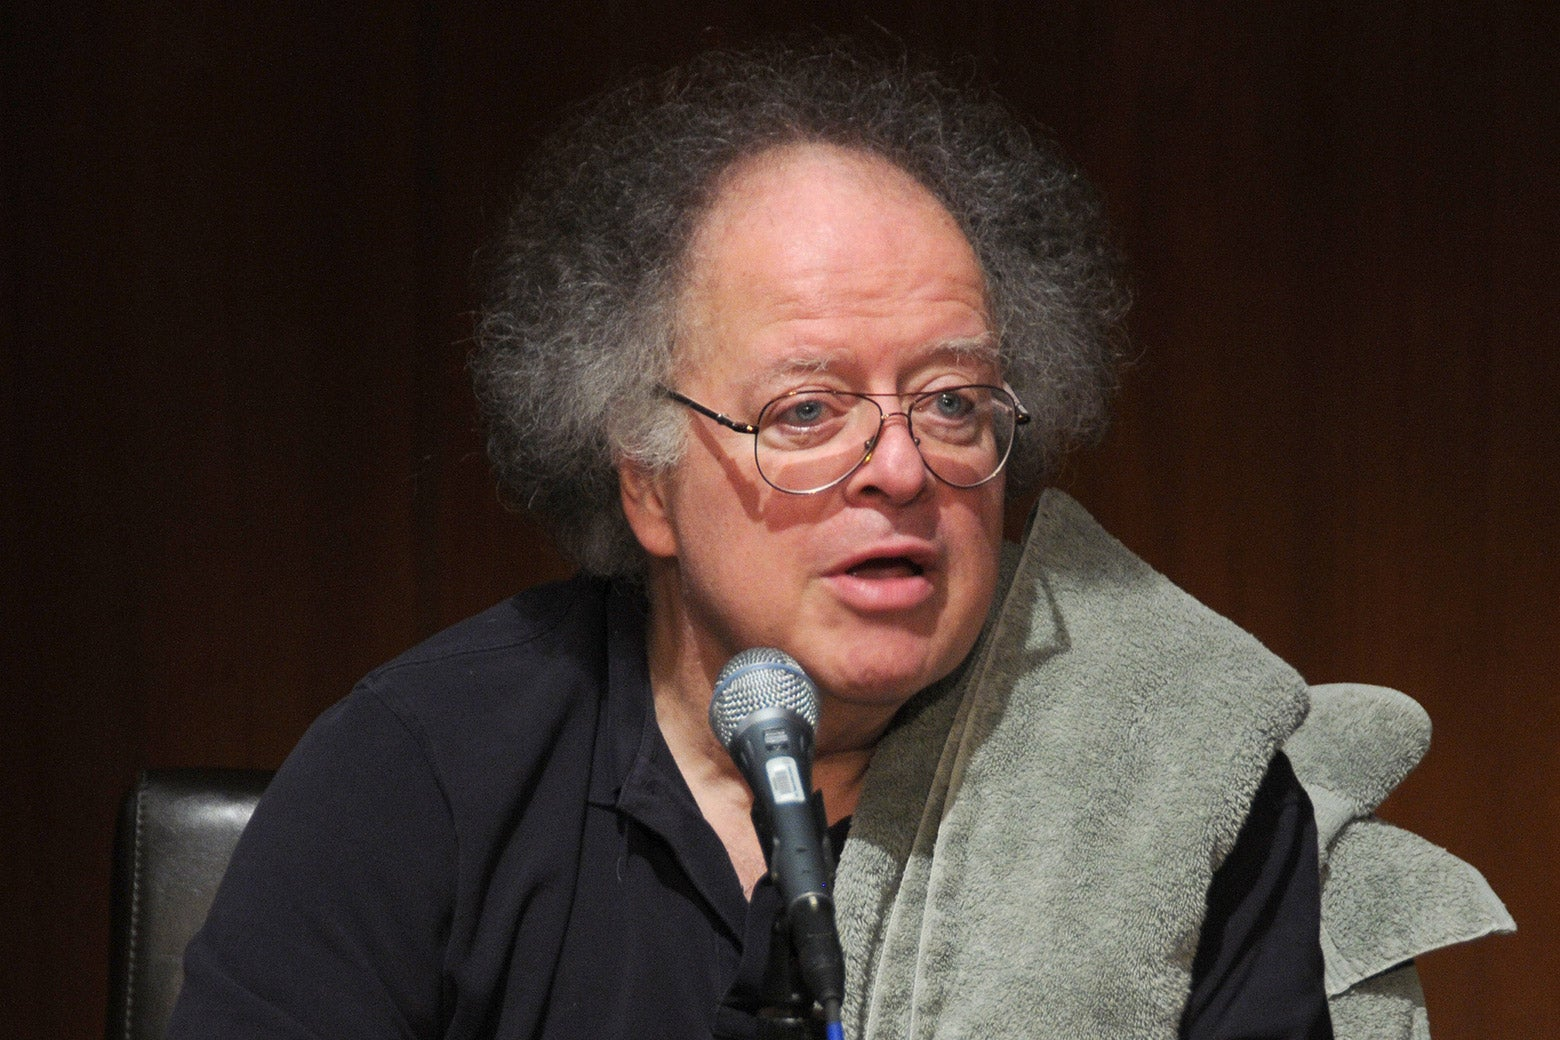 Music Director of the Metropolitan Opera James Levine speaks at the Metropolitan Opera's press conference to announce its 2011-2011 season at The Metropolitan Opera House on February 16, 2011 in New York City.